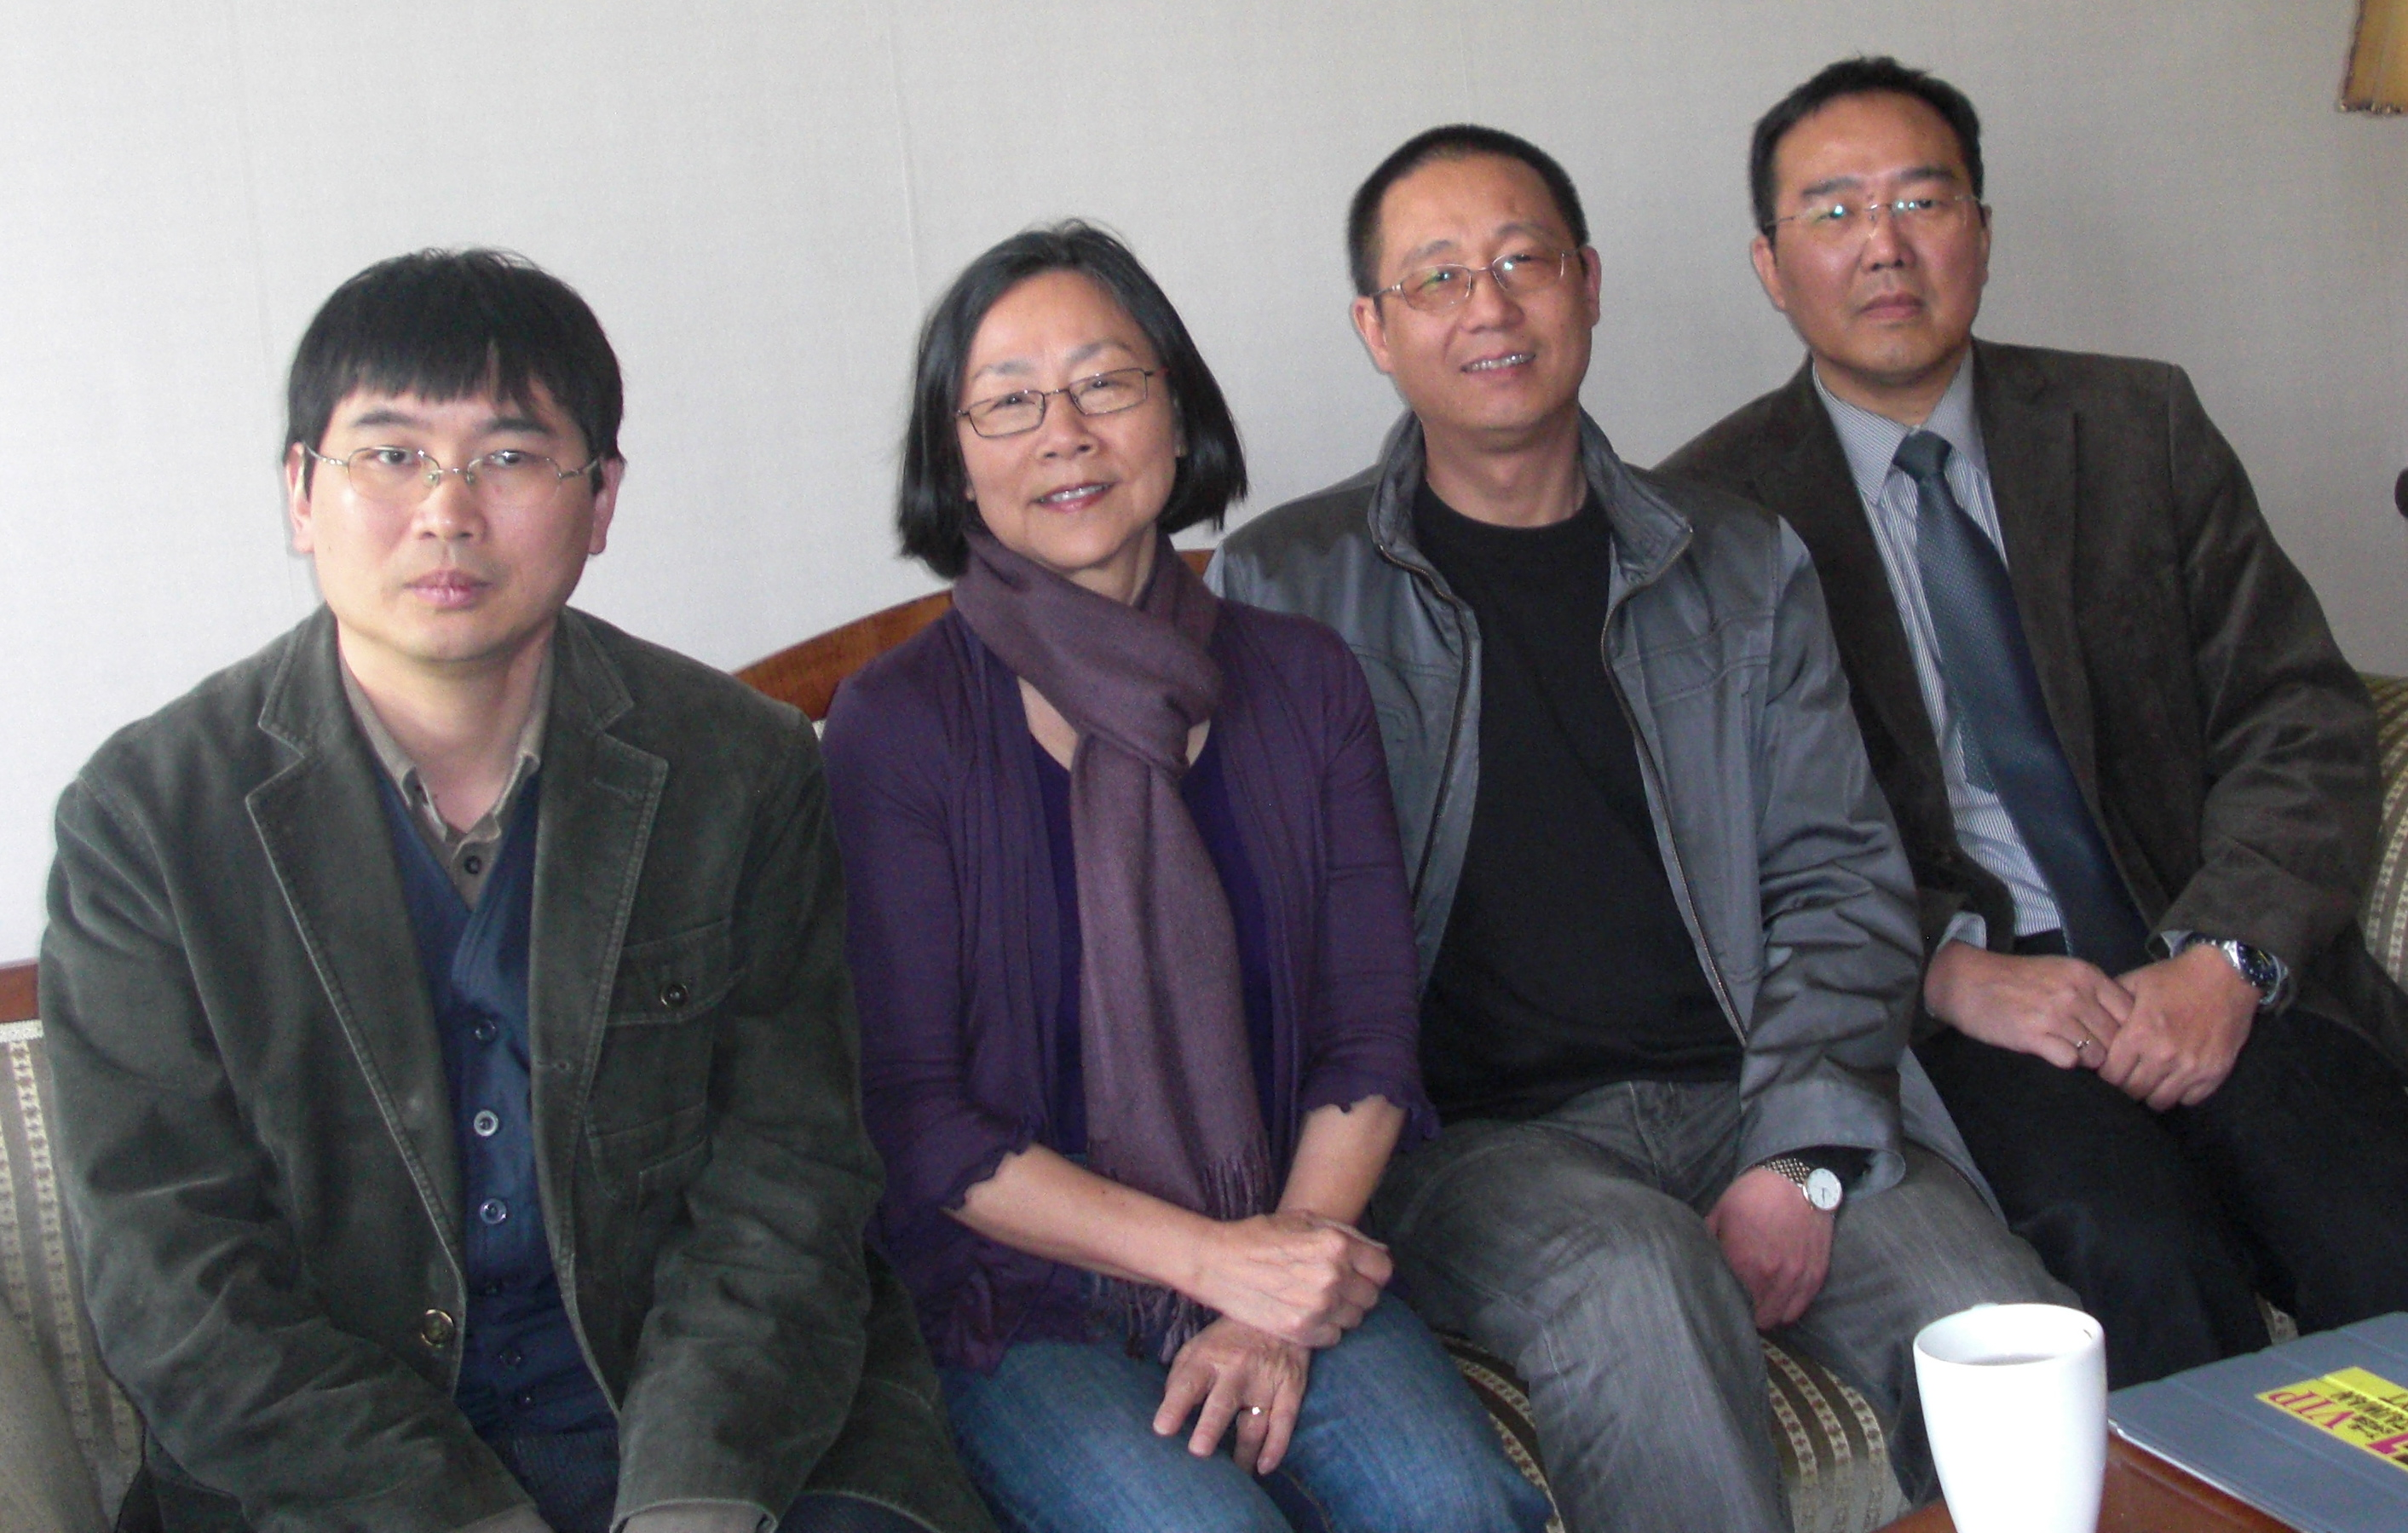 From left to right: Chang Ping, Tienchi Martin-Liao, writer Ye Fu, and a friend, in Amsterdam in 2012. Image courtesy of the author.